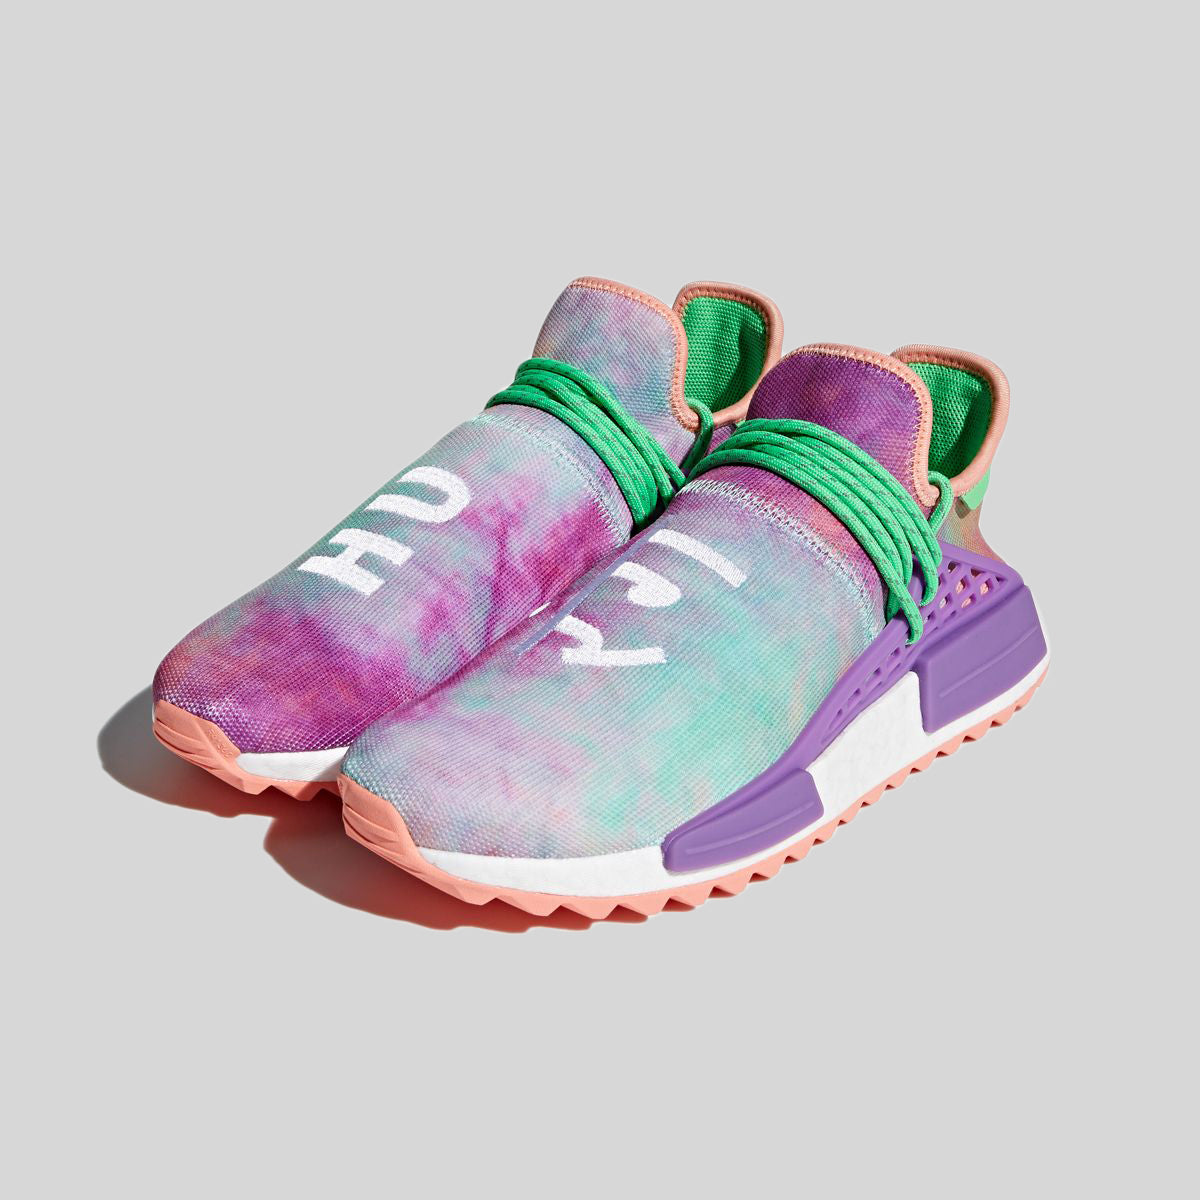 release date 31432 41d78 adidas Originals Human Race NMD Pharrell Holi Festival (Chalk Coral)